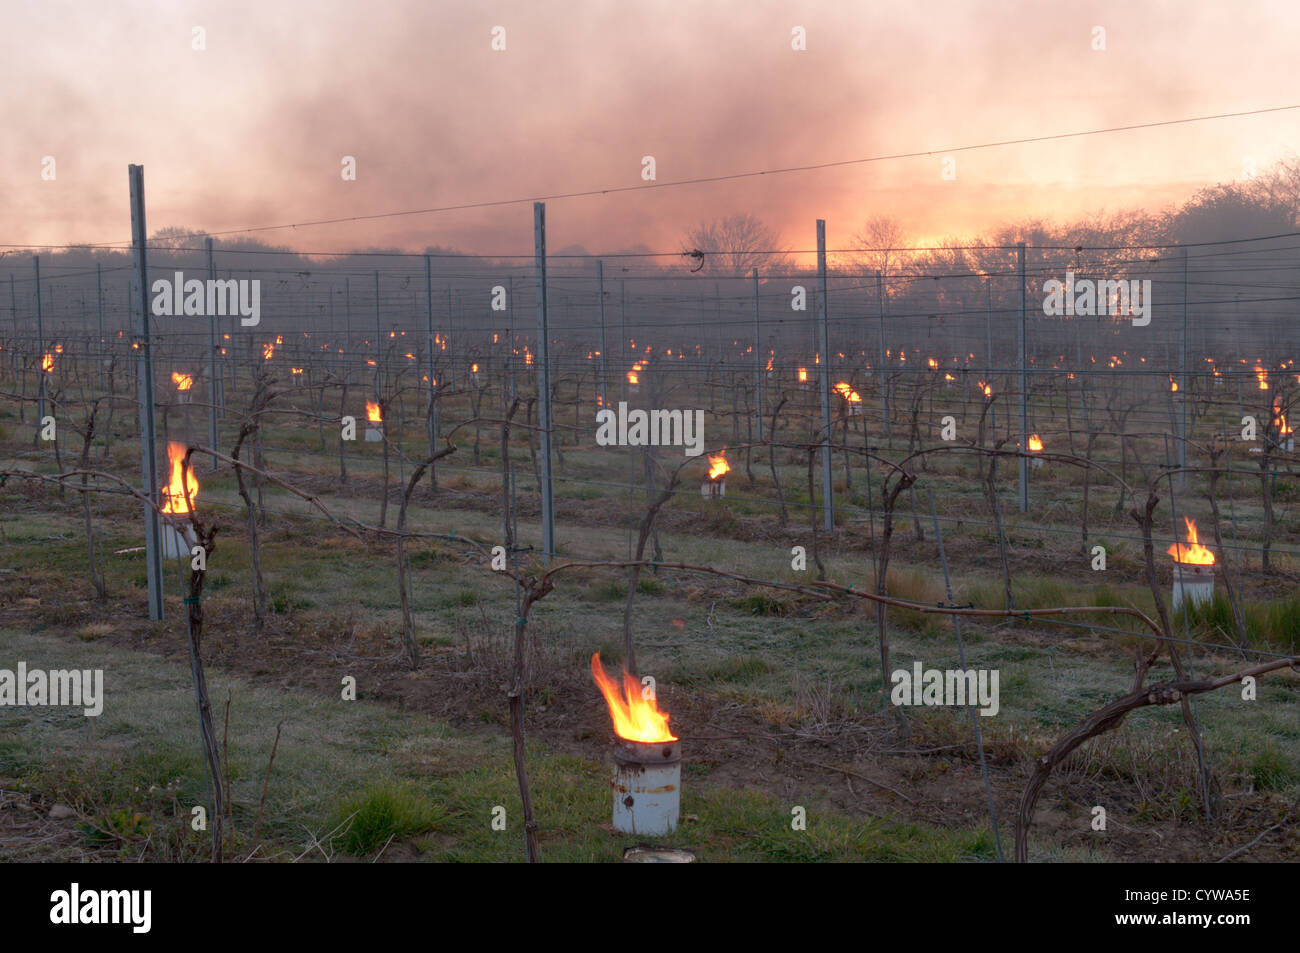 Paraffin burner 'bougies' lit in vineyard in West Sussex, UK to protect grapes from frost. Dawn. April. Stock Photo